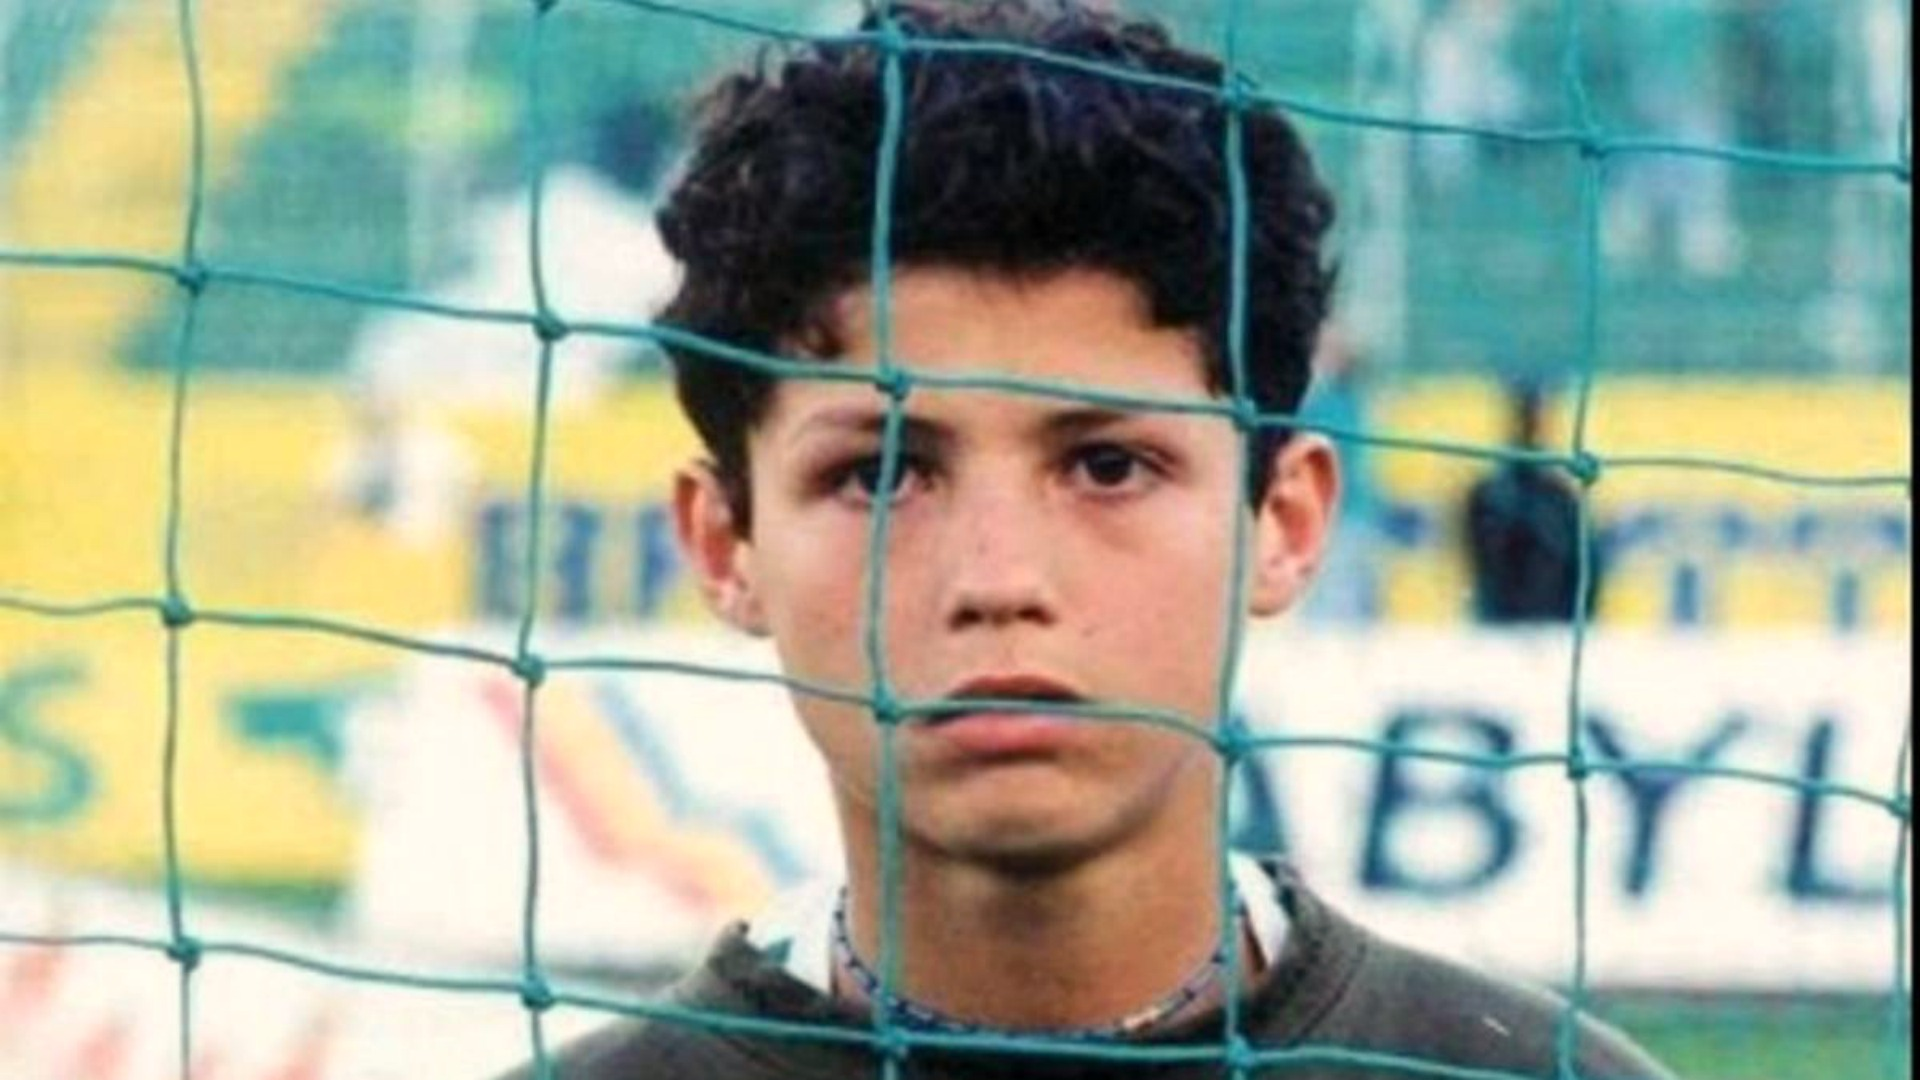 Cristiano Ronaldo, all-time top scorer at the Euros: his road from poverty to millions